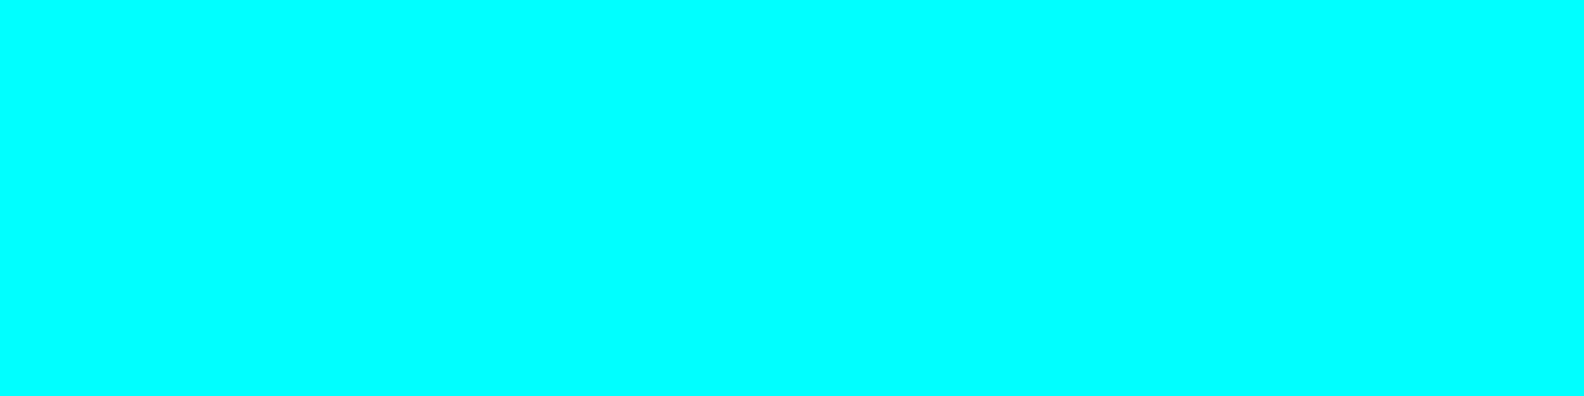 1584x396 Cyan Solid Color Background